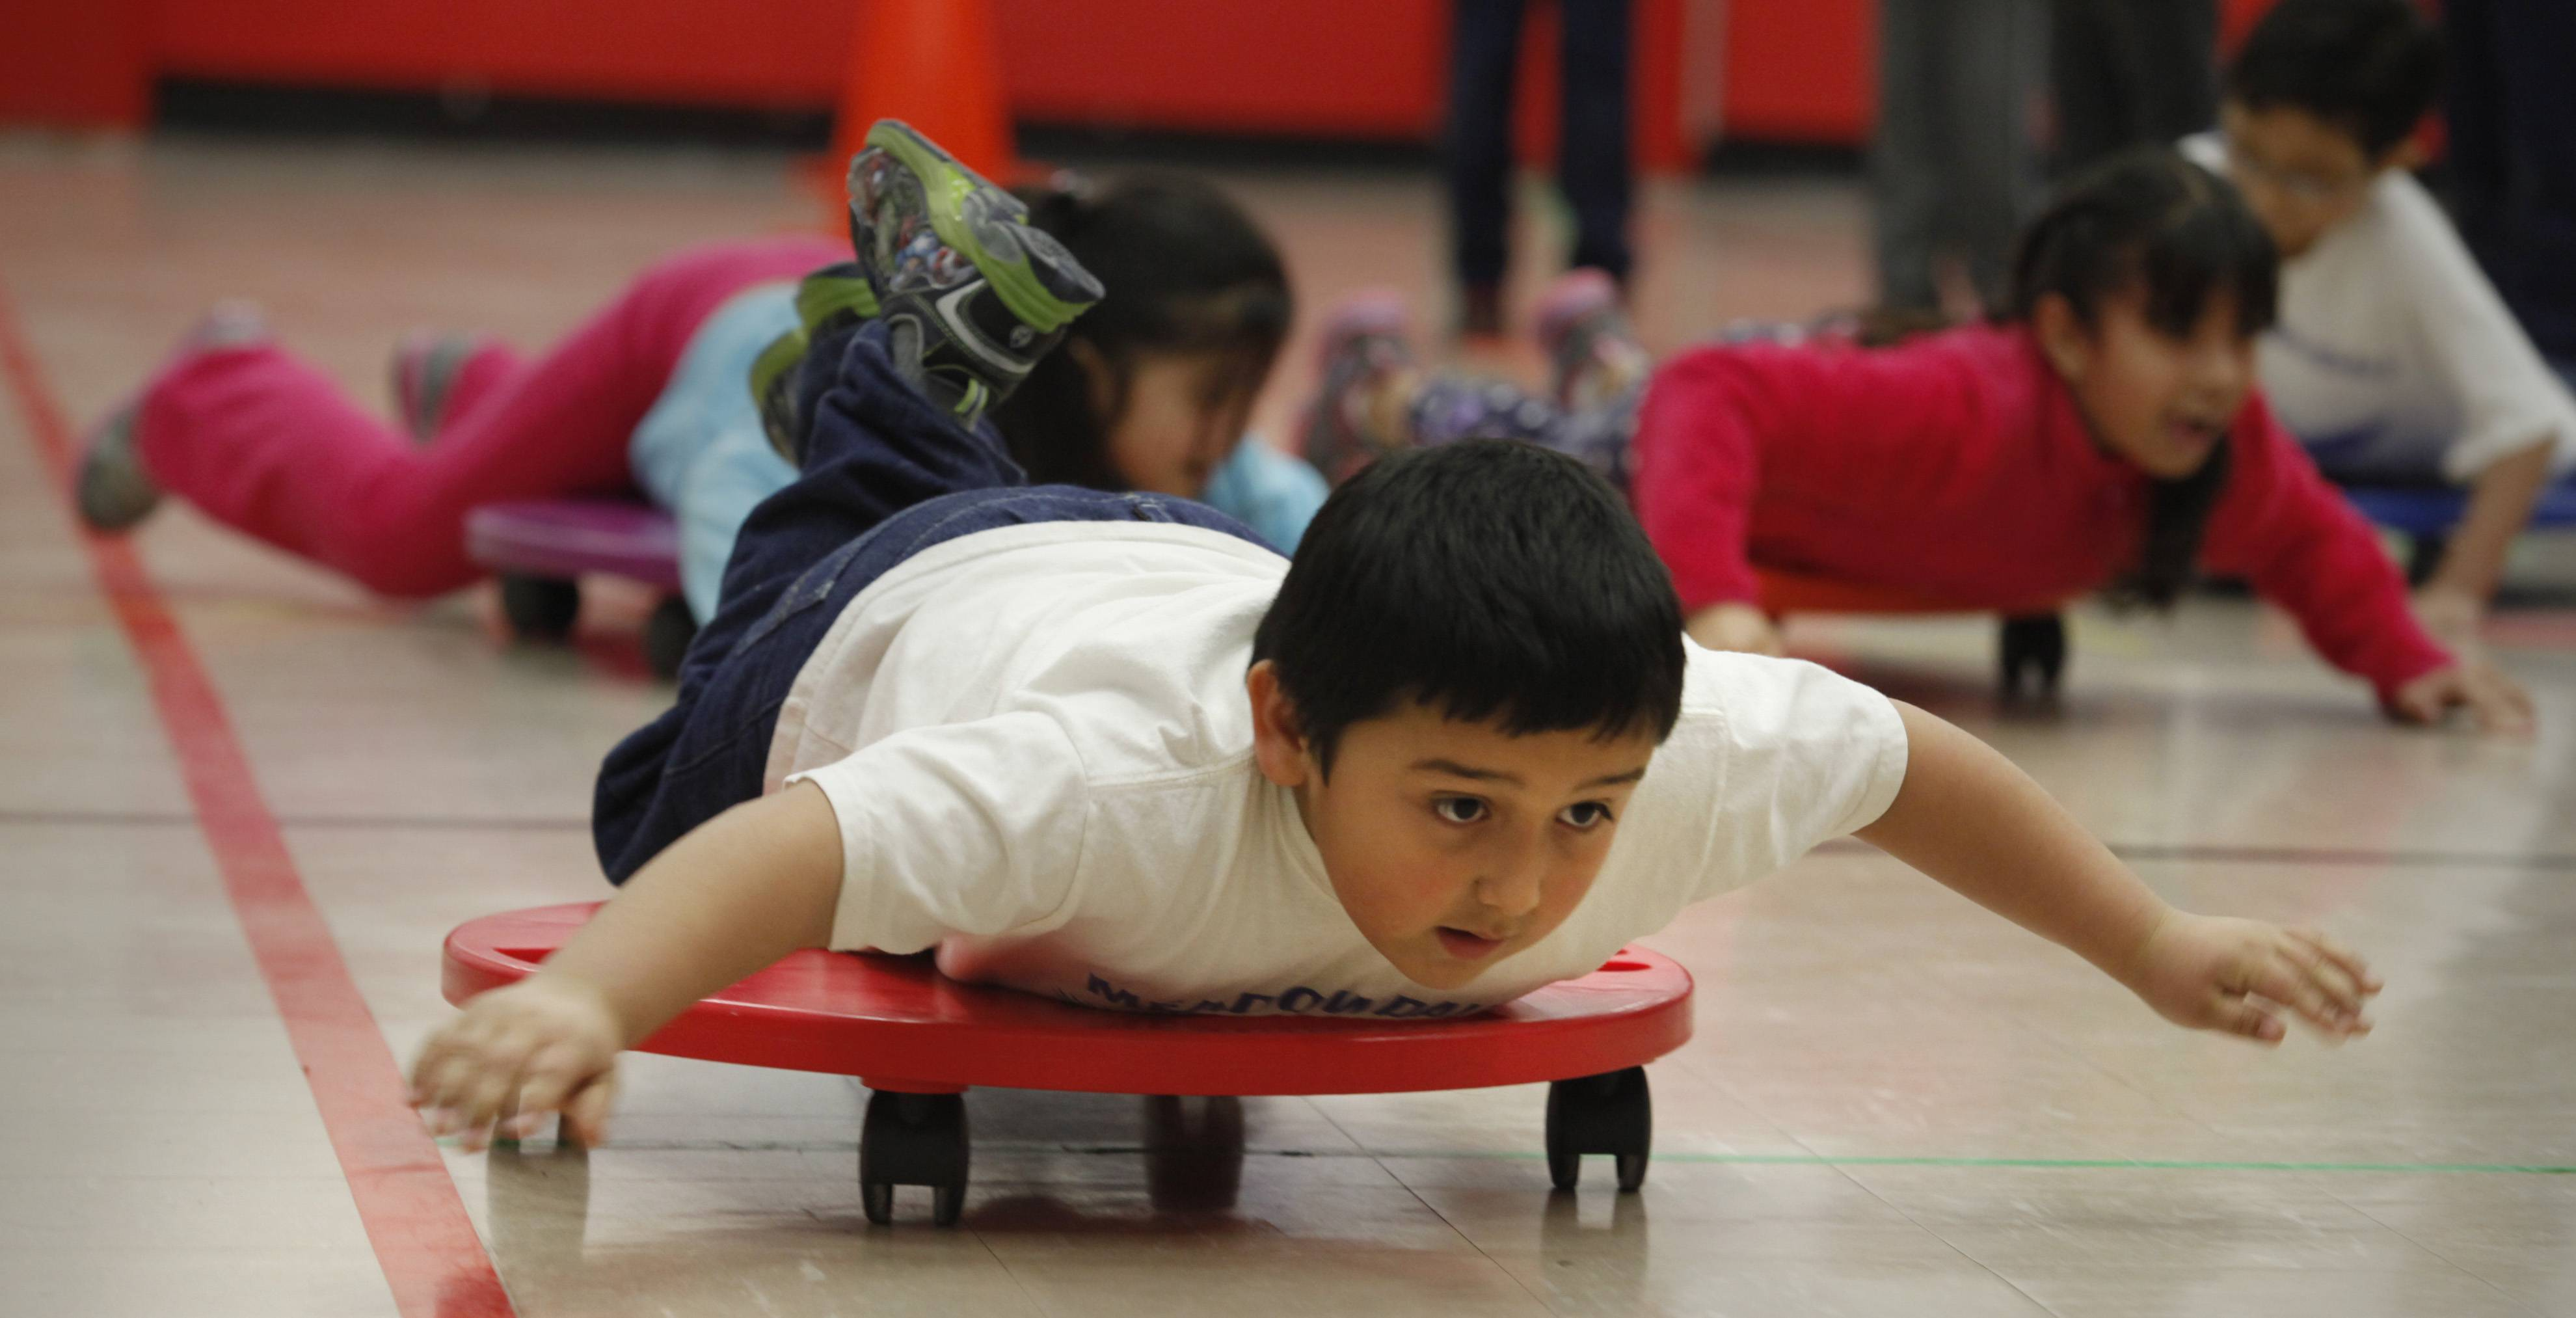 Meadowdale Elementary first-grader Juan Tinajeros sails across the floor on a wheeled scooter as he and his classmates try out their own version of the olympic skeleton event Friday in Carpentersville.